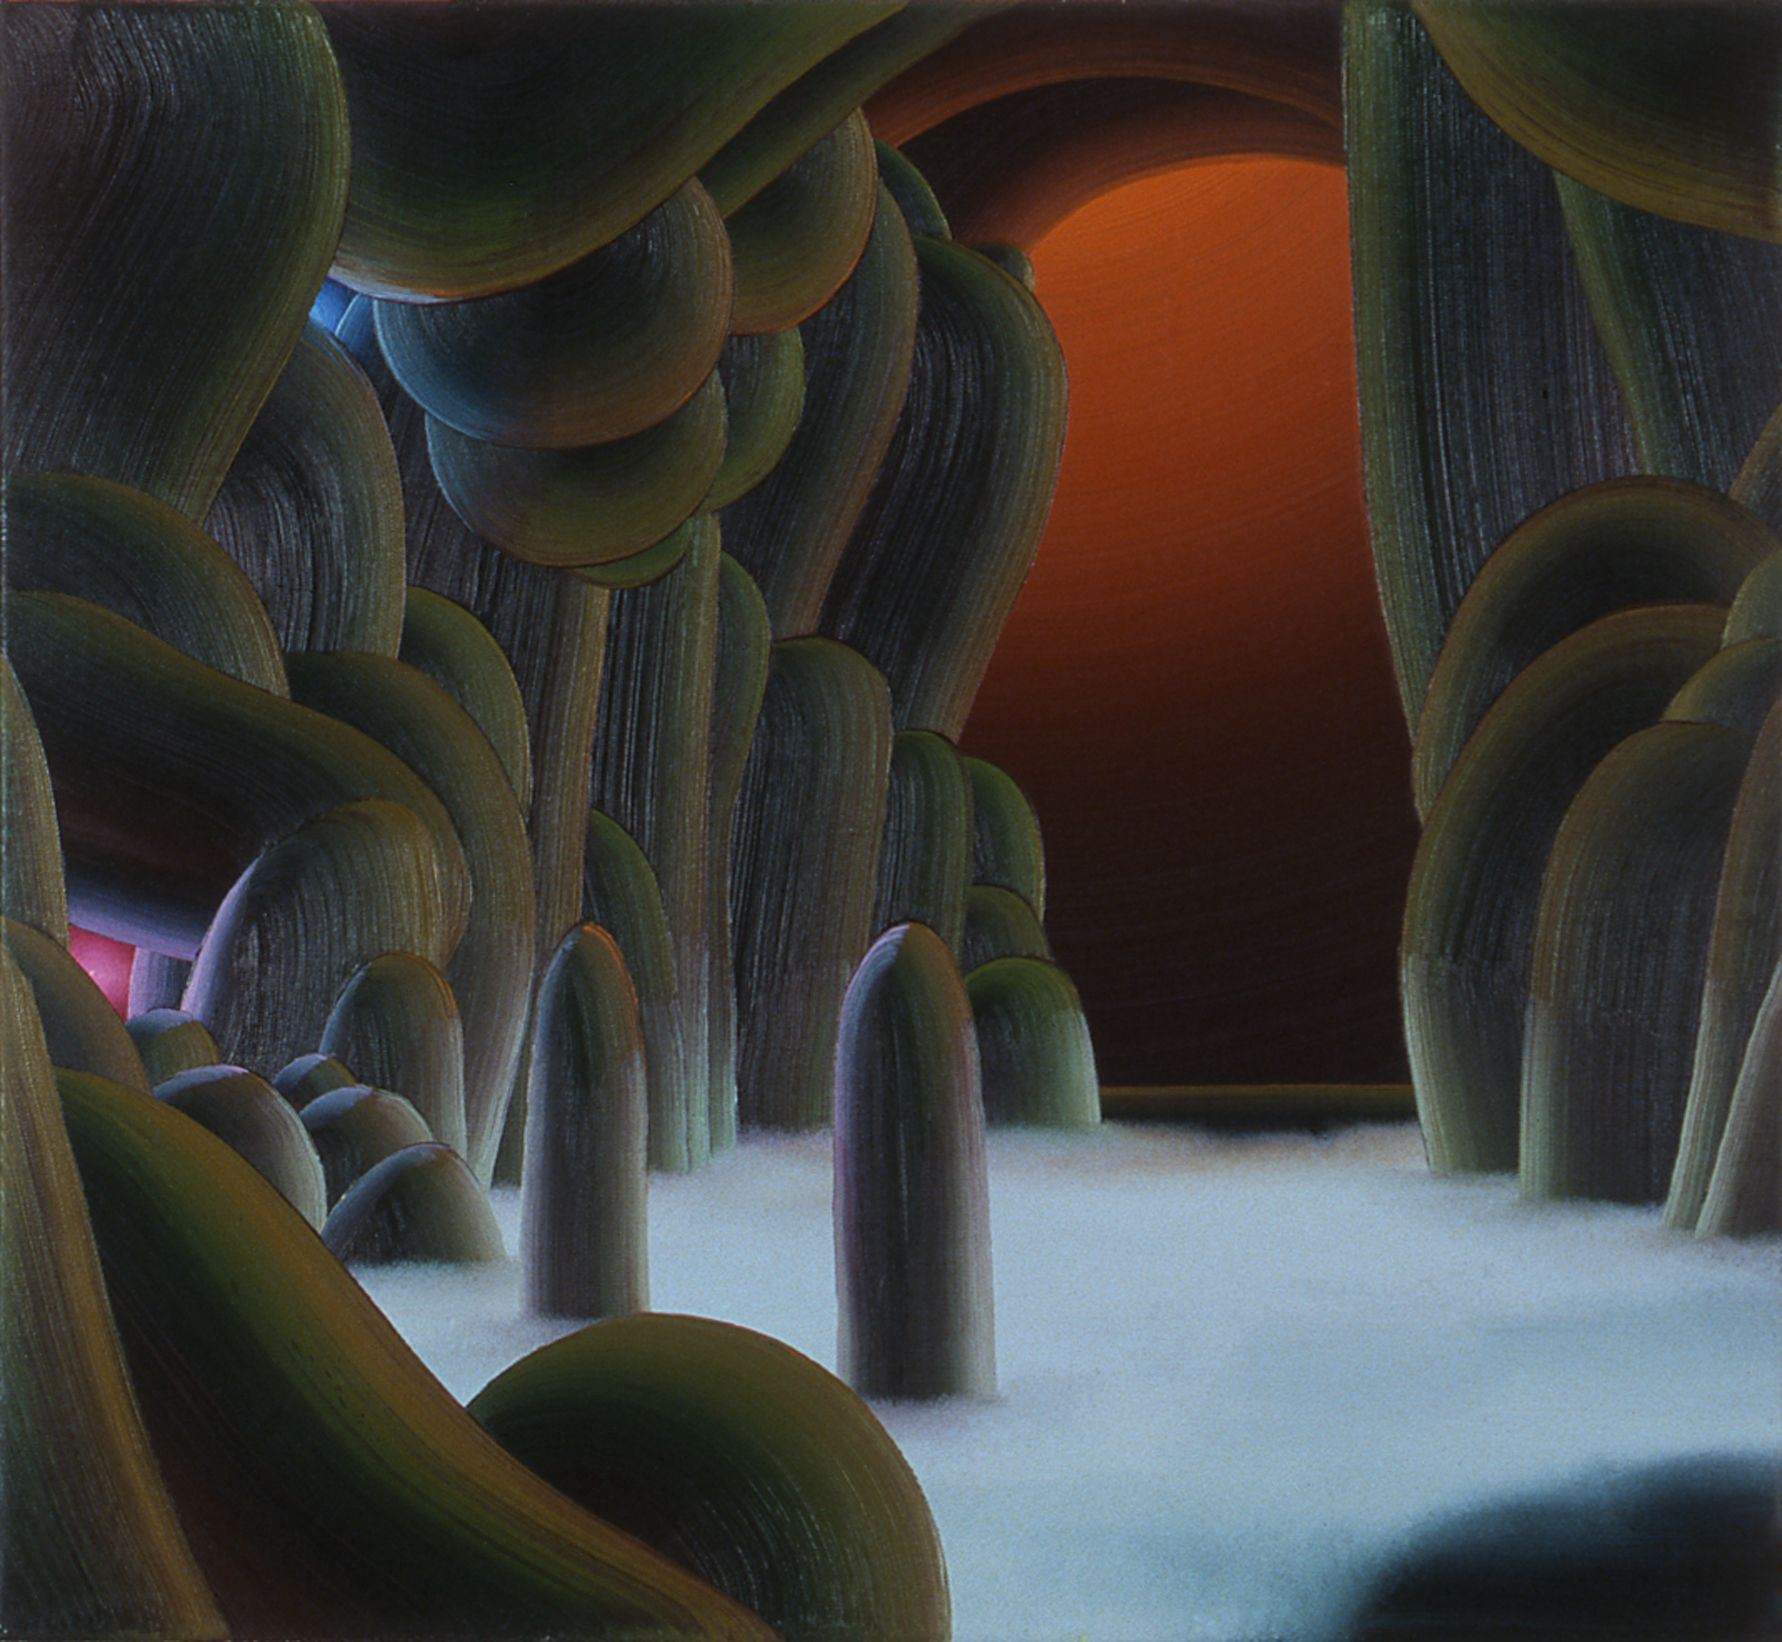 Christian Ward, Cave with Blue Mist & Orange Light, 2003, Oil on canvas, 24 x 26 inches